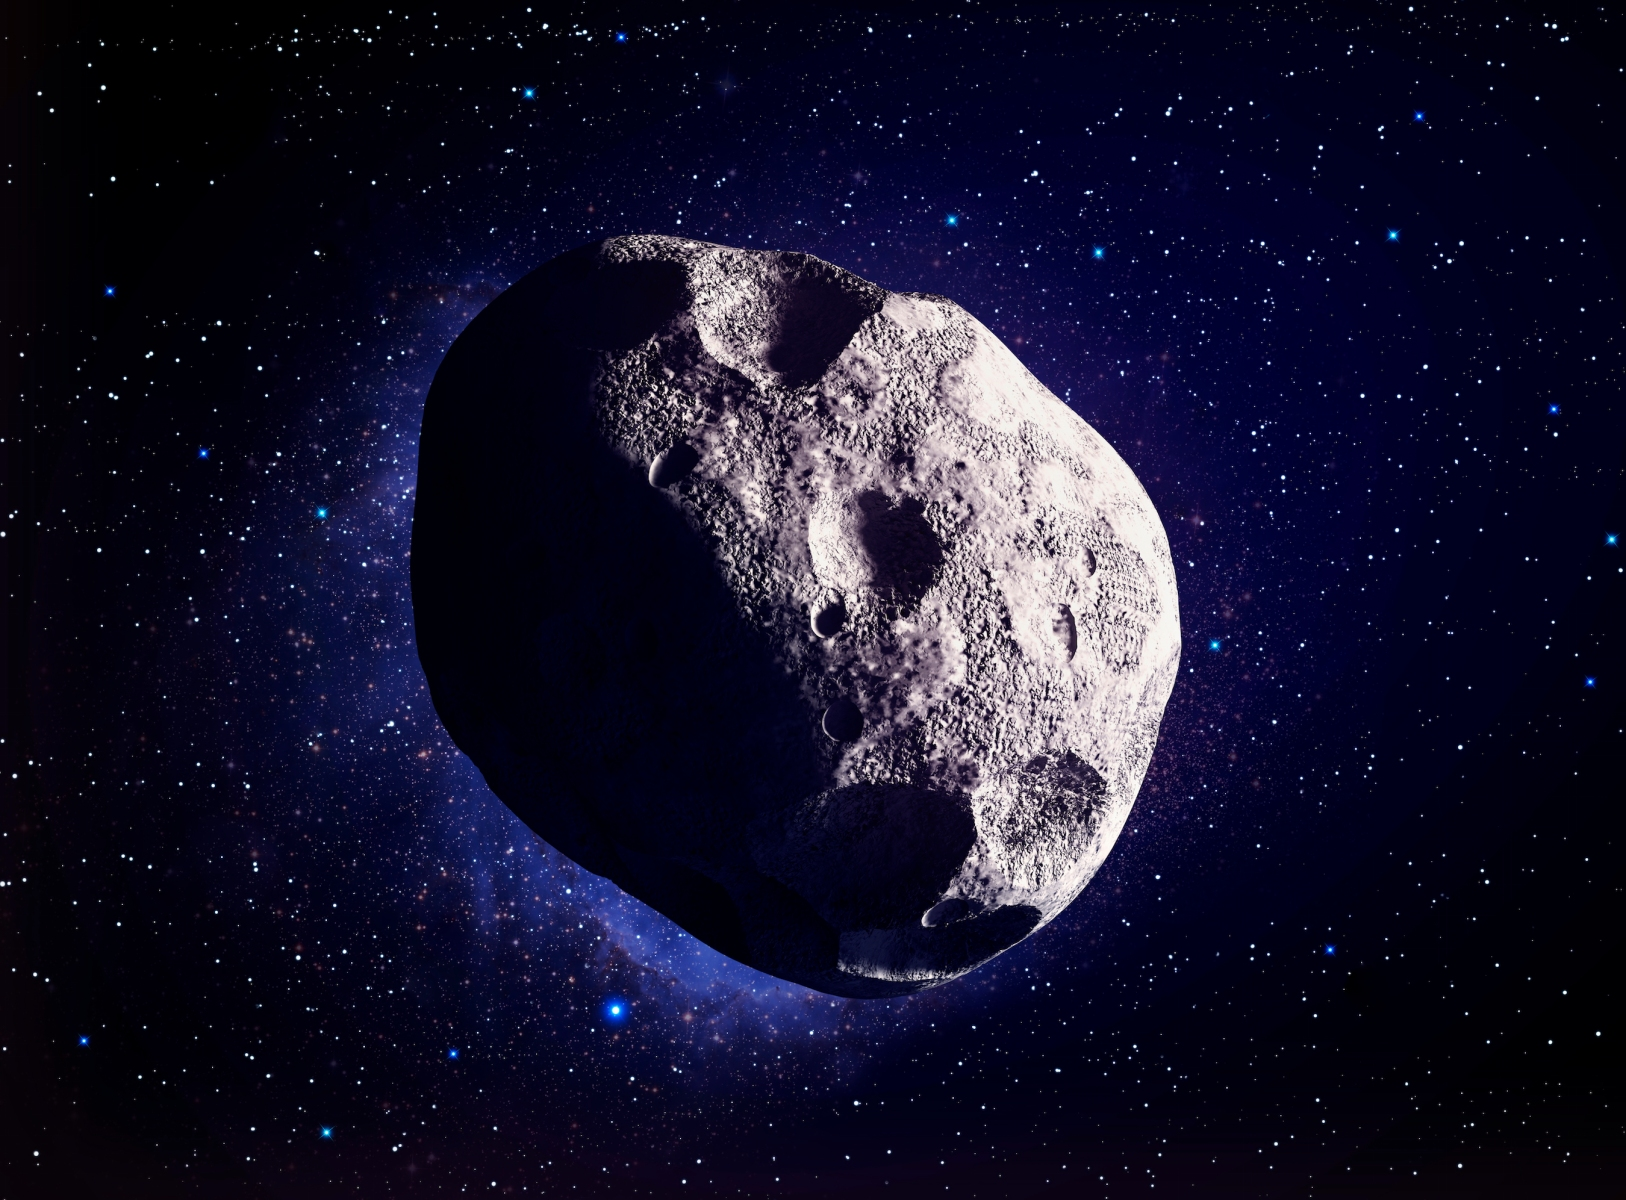 Asteroid, computer illustration.